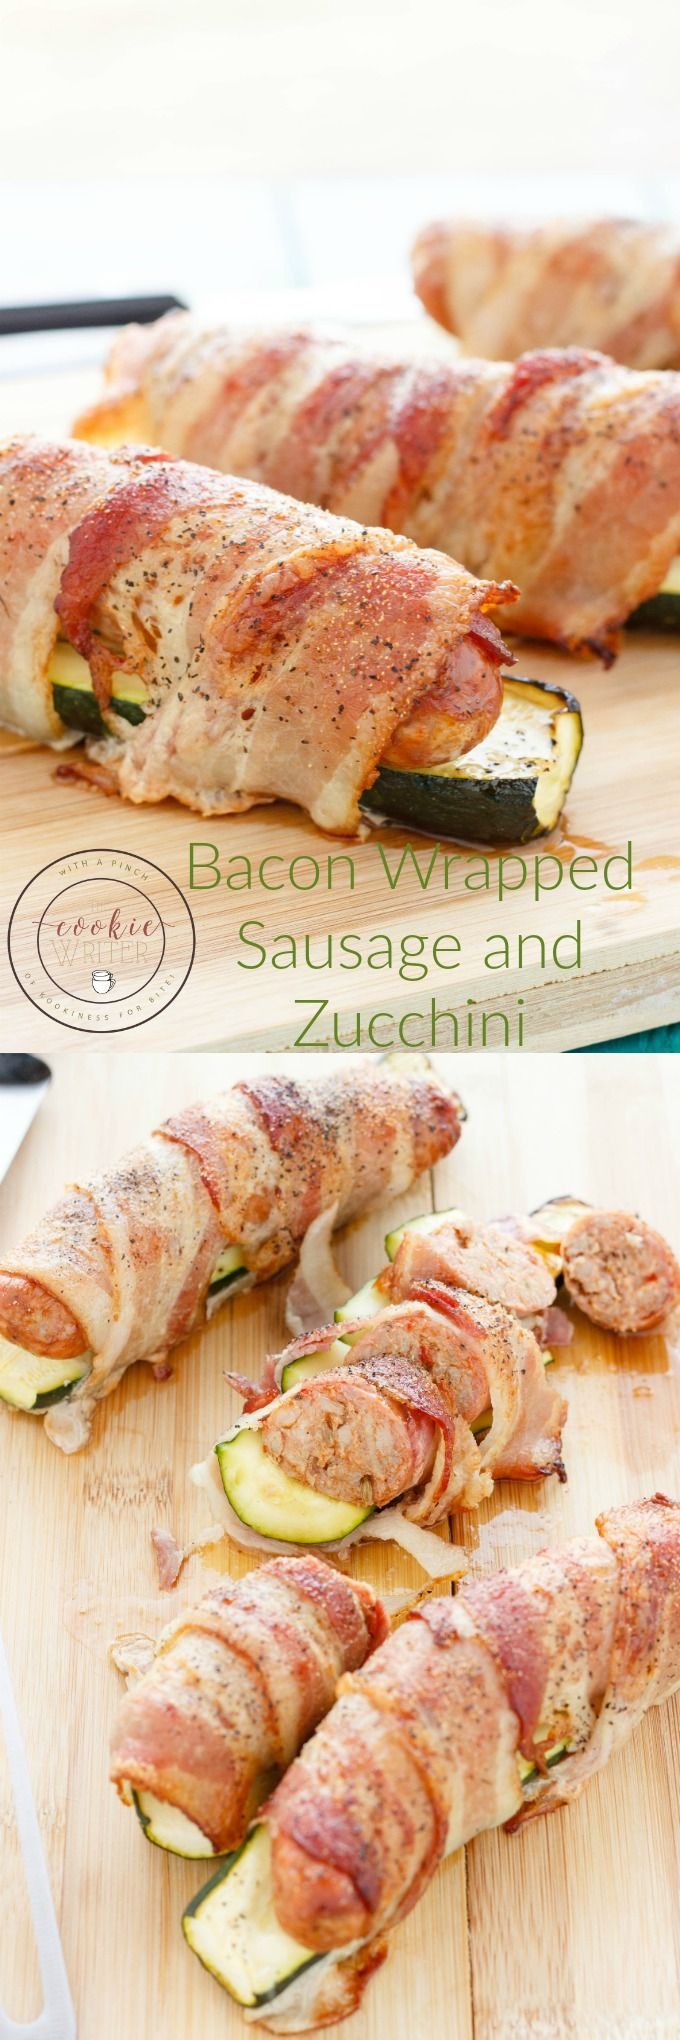 Bacon Wrapped Sausage and Zucchini | http://thecookiewriter.com | @thecookiewriter | #pork